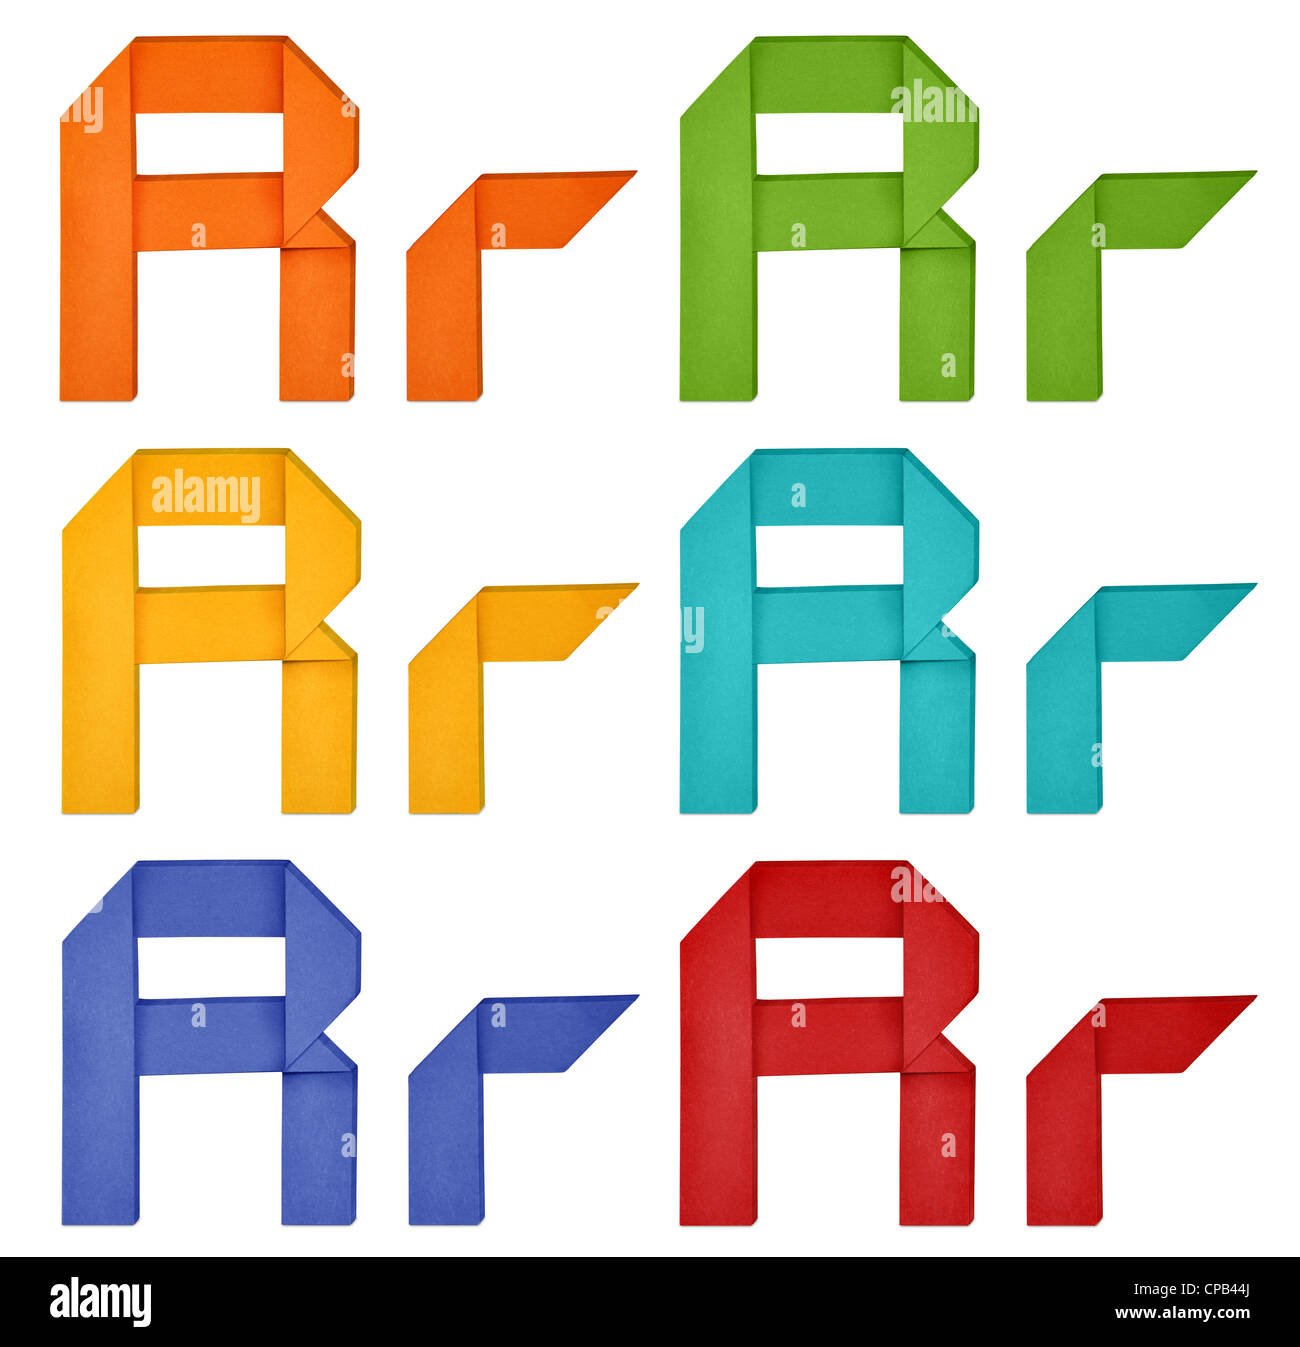 Set of capital letter and lowercase letter 'R' in various color. Origami alphabet letter on white background. - Stock Image